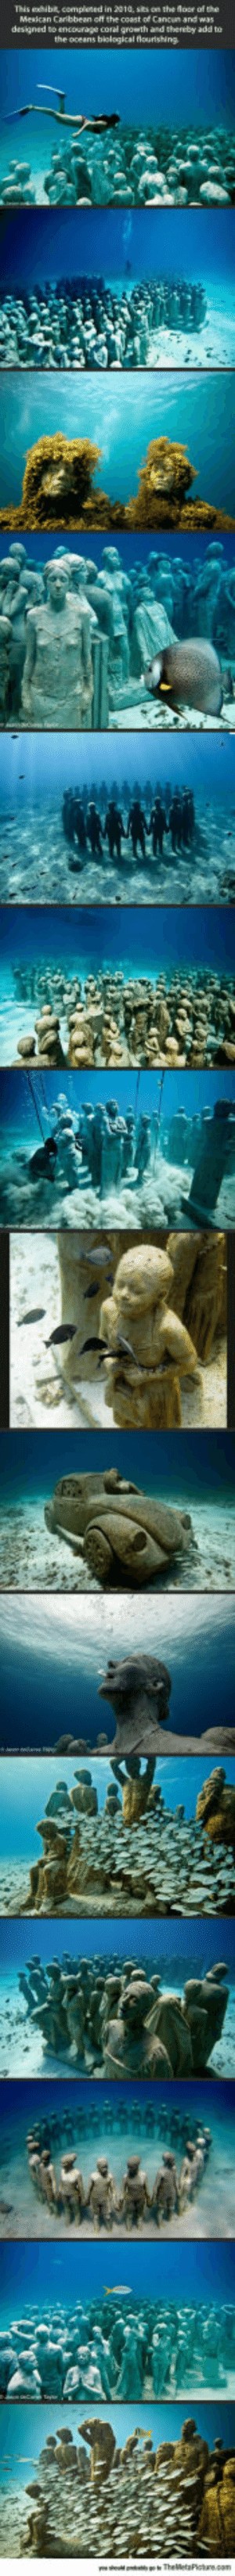 Tumblr, Blog, and Http: This exhibt, completed in 2010, sits on the oor of the  the oceans biological flourishing srsfunny:Awesome Underwater Museum